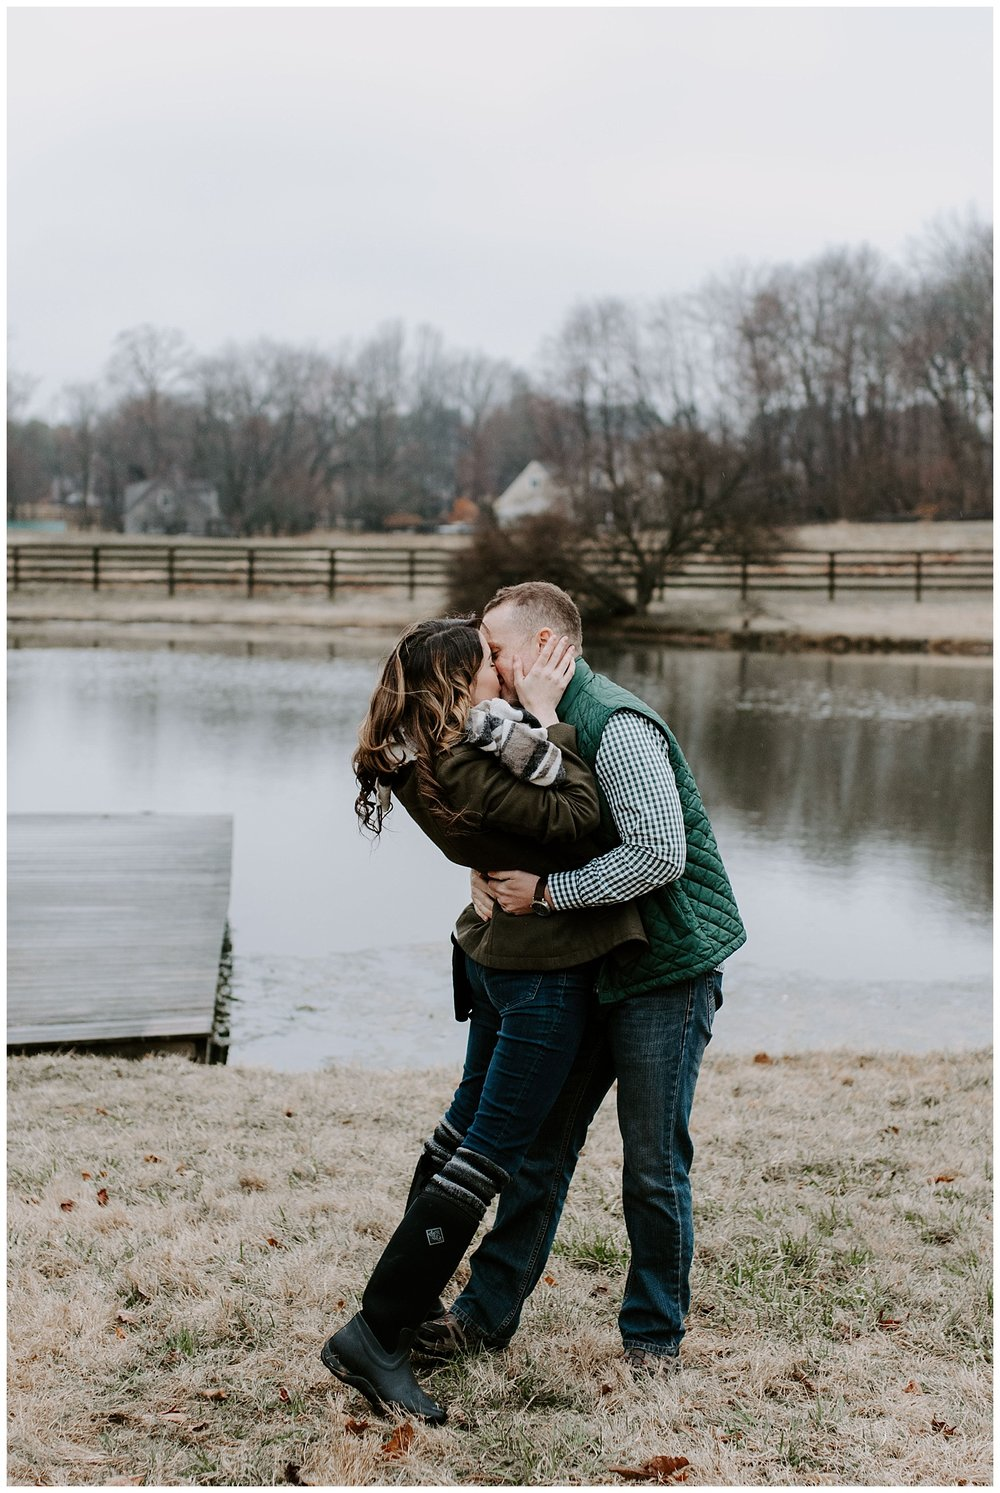 Elizabeth M Photography Norther Virginia Wedding Photographer Brittanie and Ben Engagement Session_0072.jpg